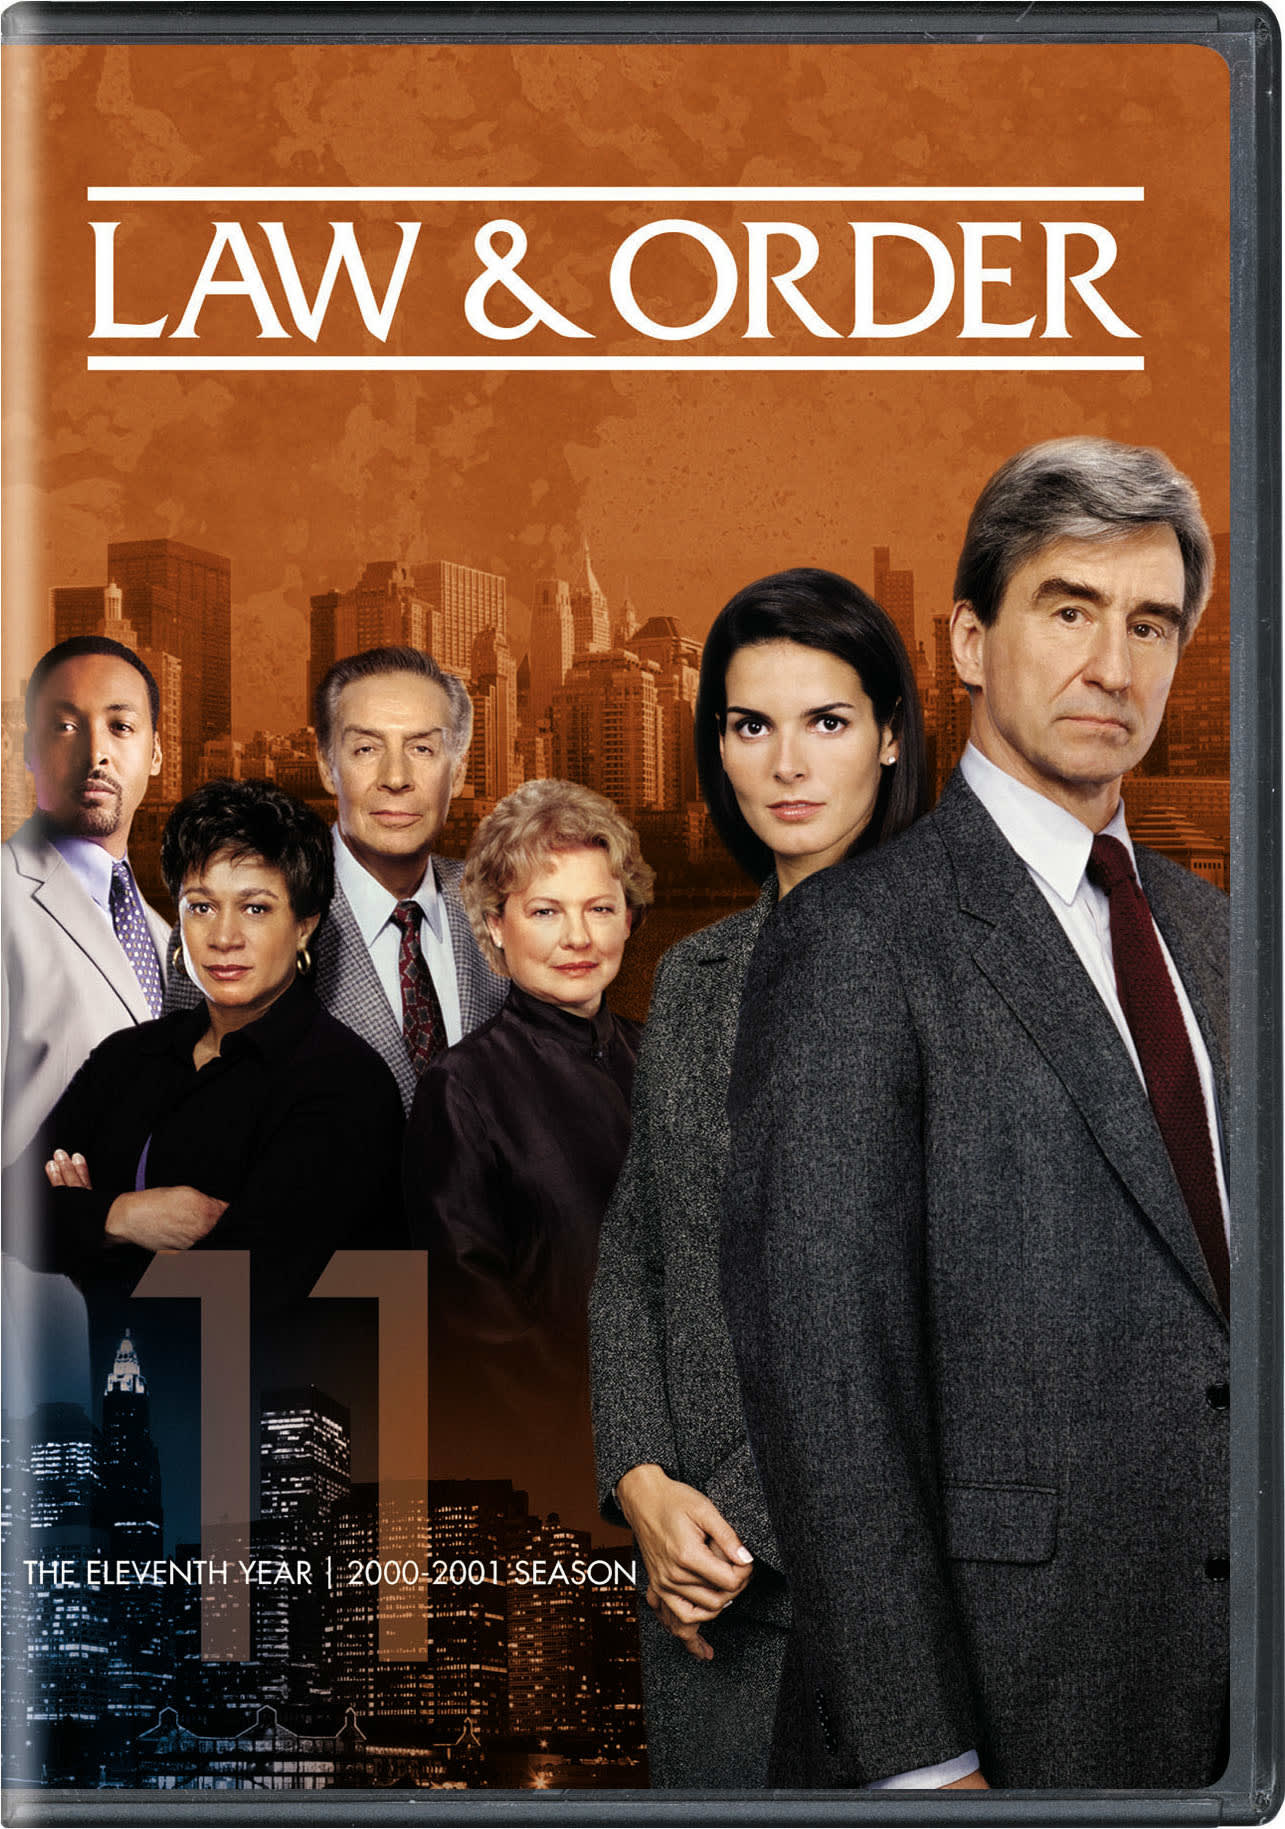 Law & Order: The Eleventh Year [DVD]